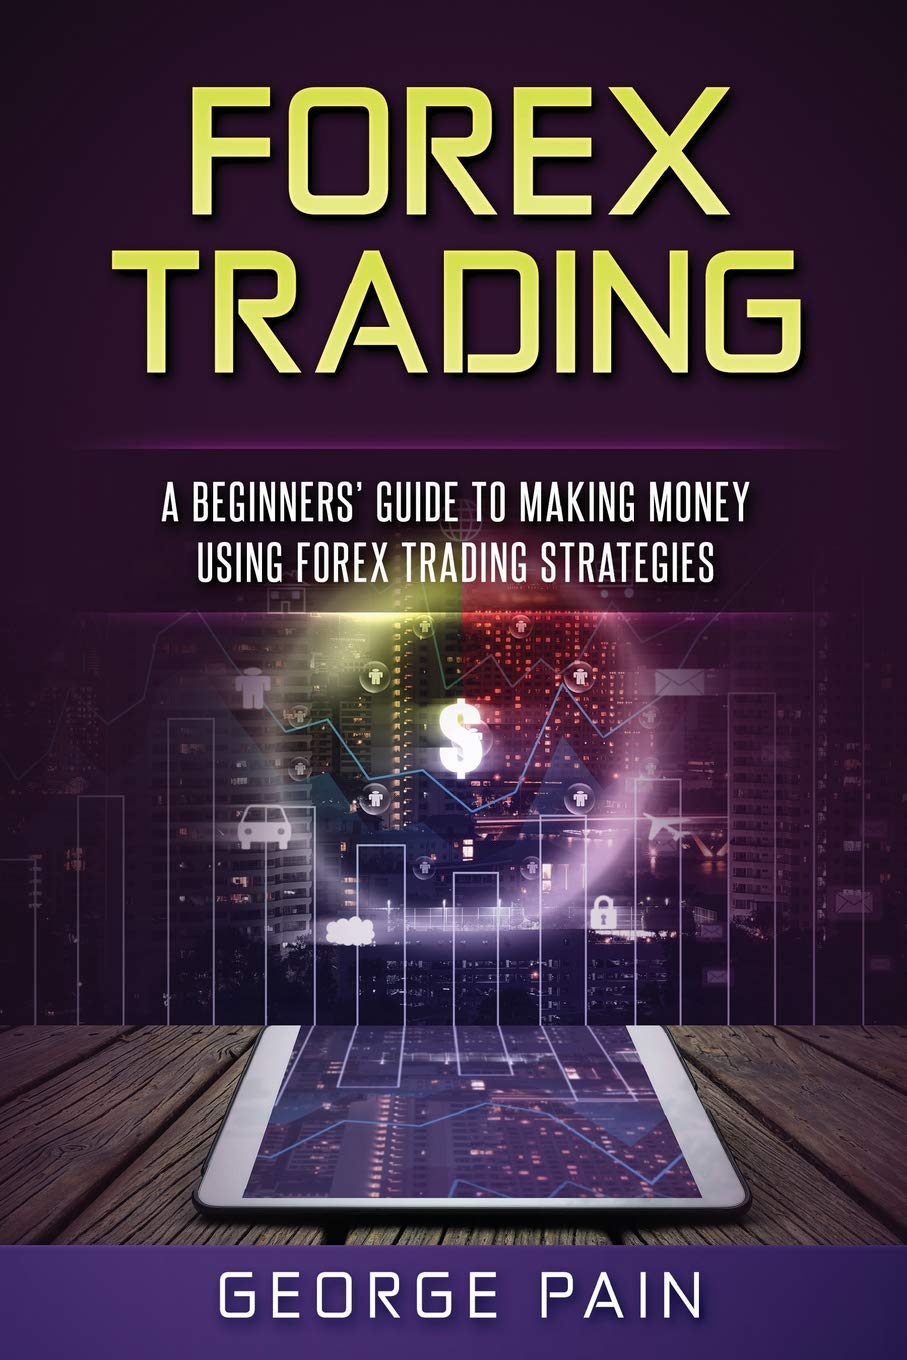 Download Forex Trading: A Beginners' Guide to making money using Forex Trading Strategies (Forex and Price Action Trading Strategies) (Volume 1) pdf